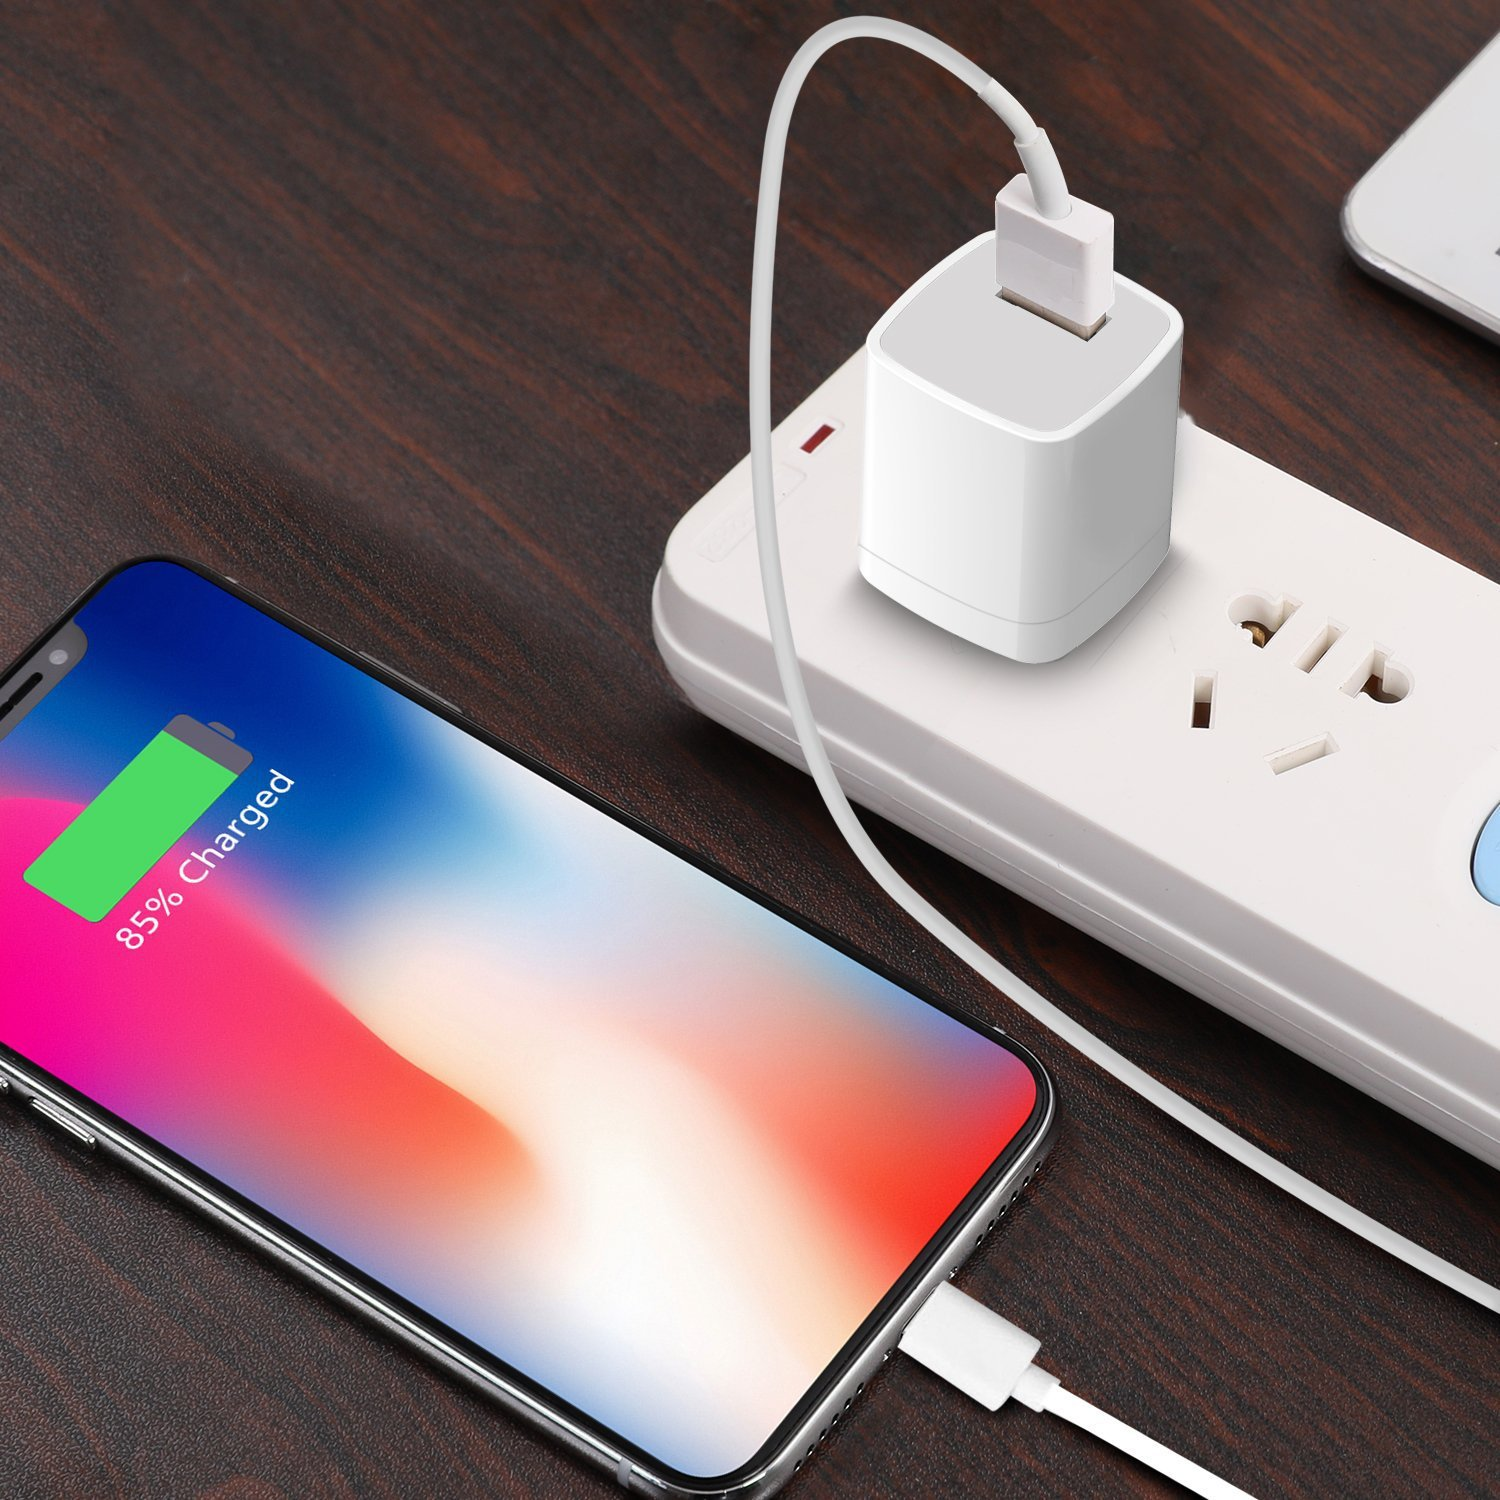 Phone Charger, Travel Wall Power Adapter Charger Cable, [2-Pack] USB Data Charge Sync Cable Compatible with iPhone X/8/7/6S/6/Plus/SE/5S/5C/XS/XR/XS Max, iPod, iPad by DelTucci (Image #7)